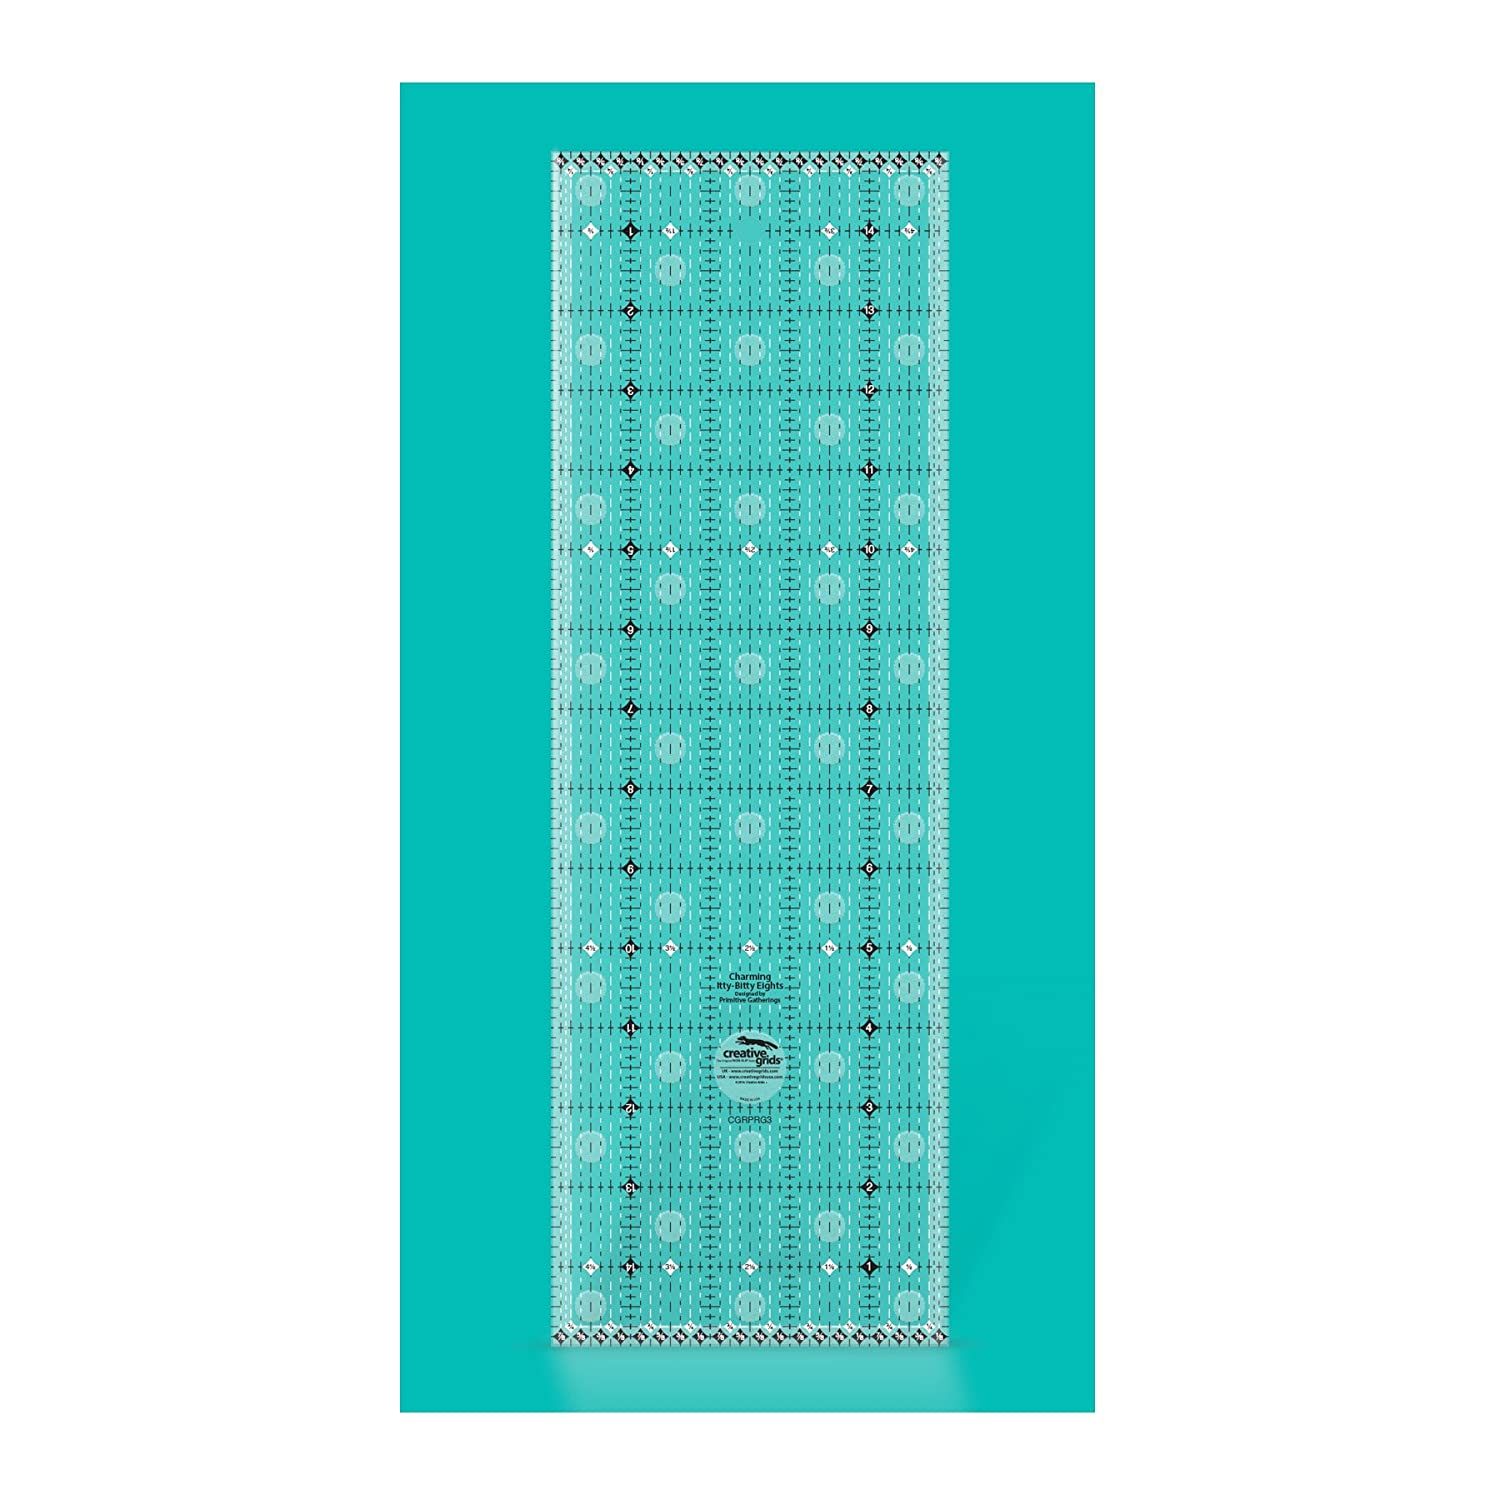 Creative Grids Charming Itty Bitty Eights 5in x 15in Quilt Ruler --Creative Grids